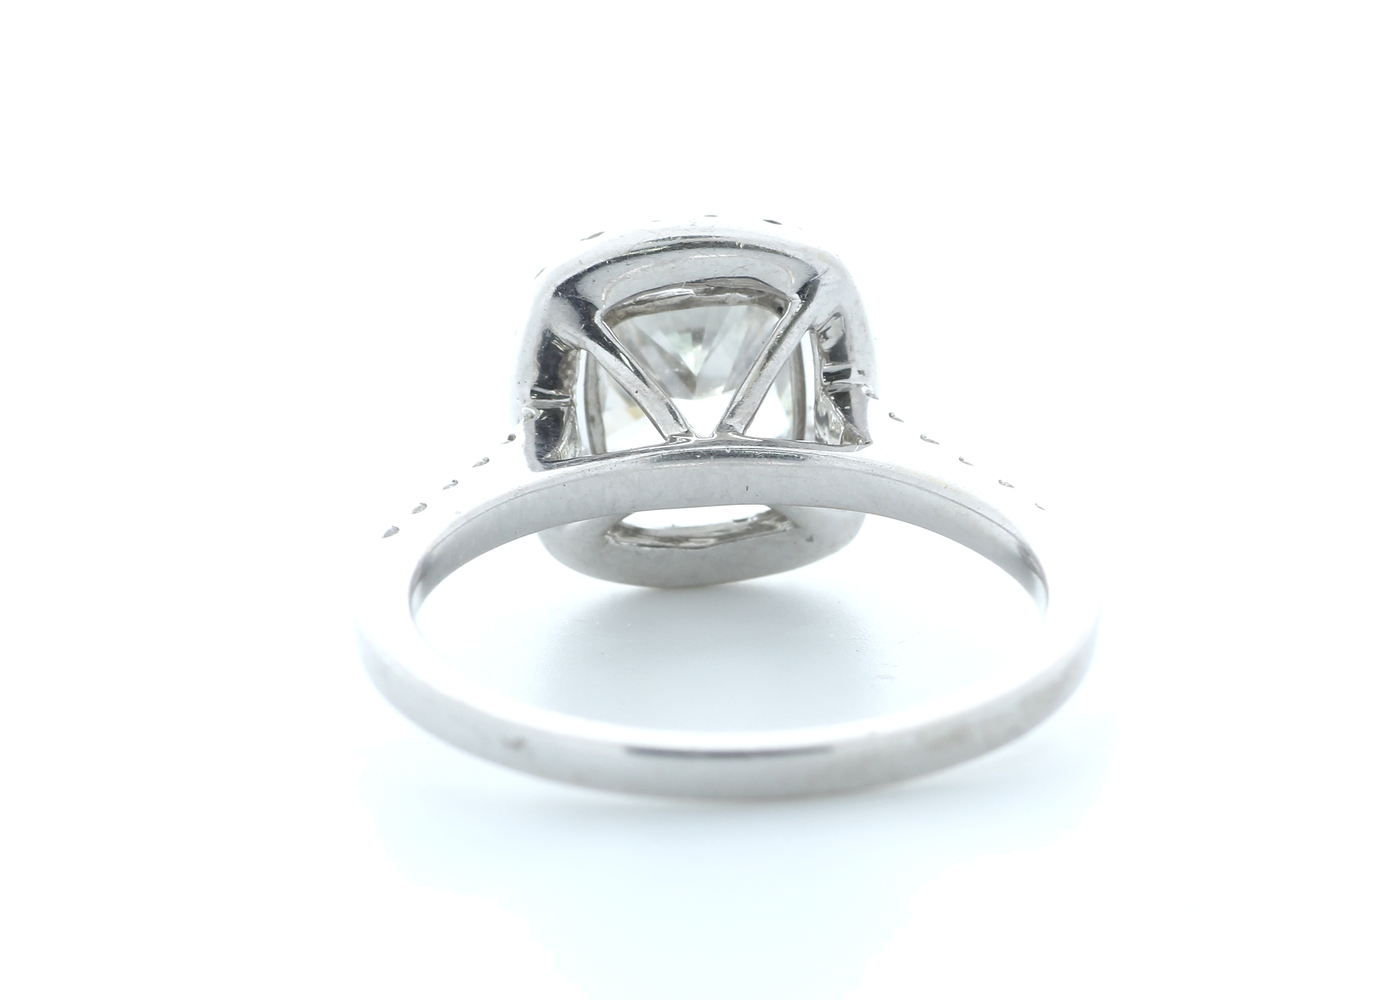 18ct White Gold Single Stone With Halo Setting Ring 2.63 (2.13) Carats - Image 3 of 5